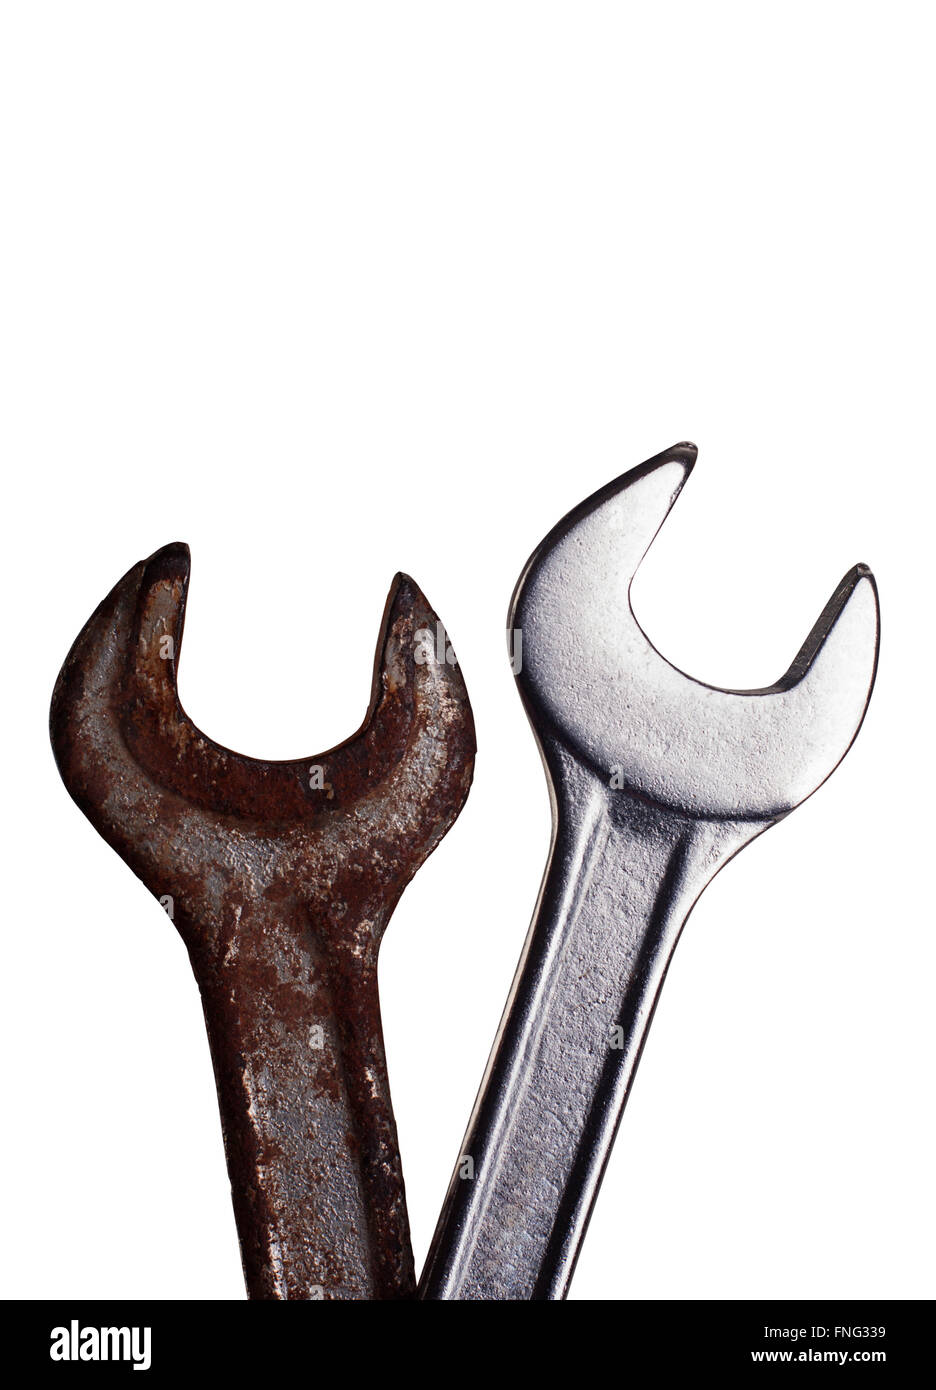 Two wrenches one rusted, one new on top of each other - Stock Image